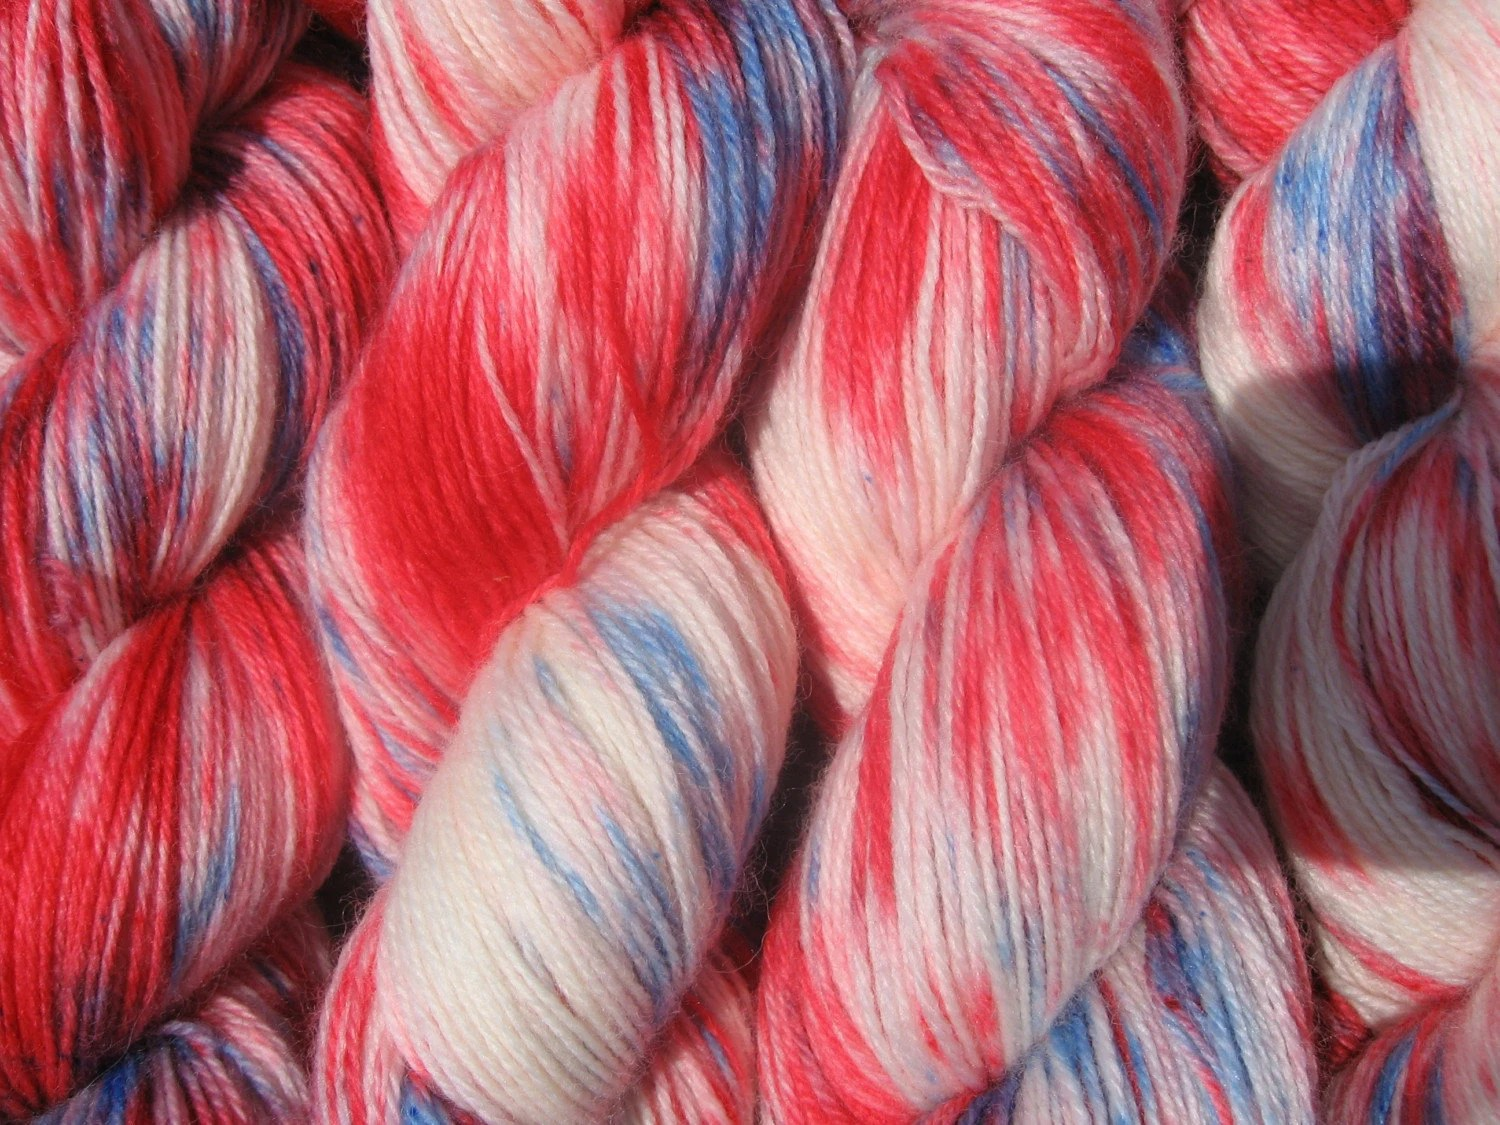 Fireworks, superwash wool and nylon fingering sock yarn, 4 oz